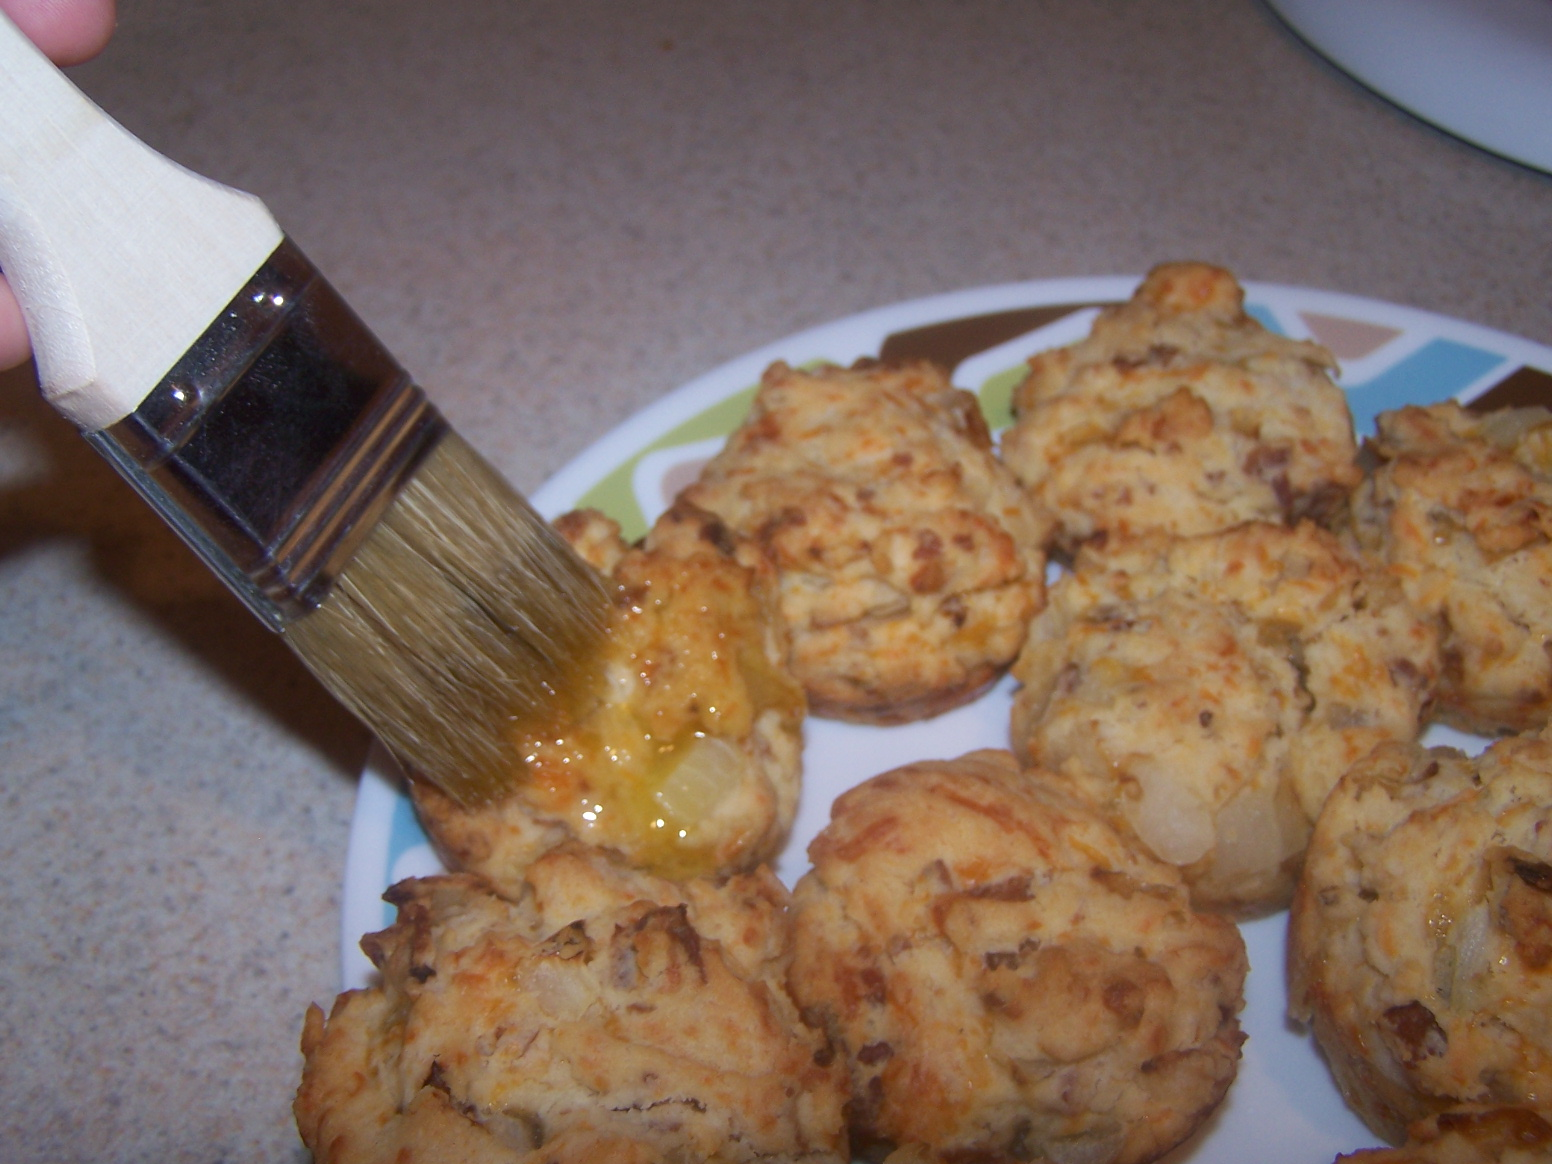 The Best is Yet to Come: Bacon Onion Cheddar Biscuits